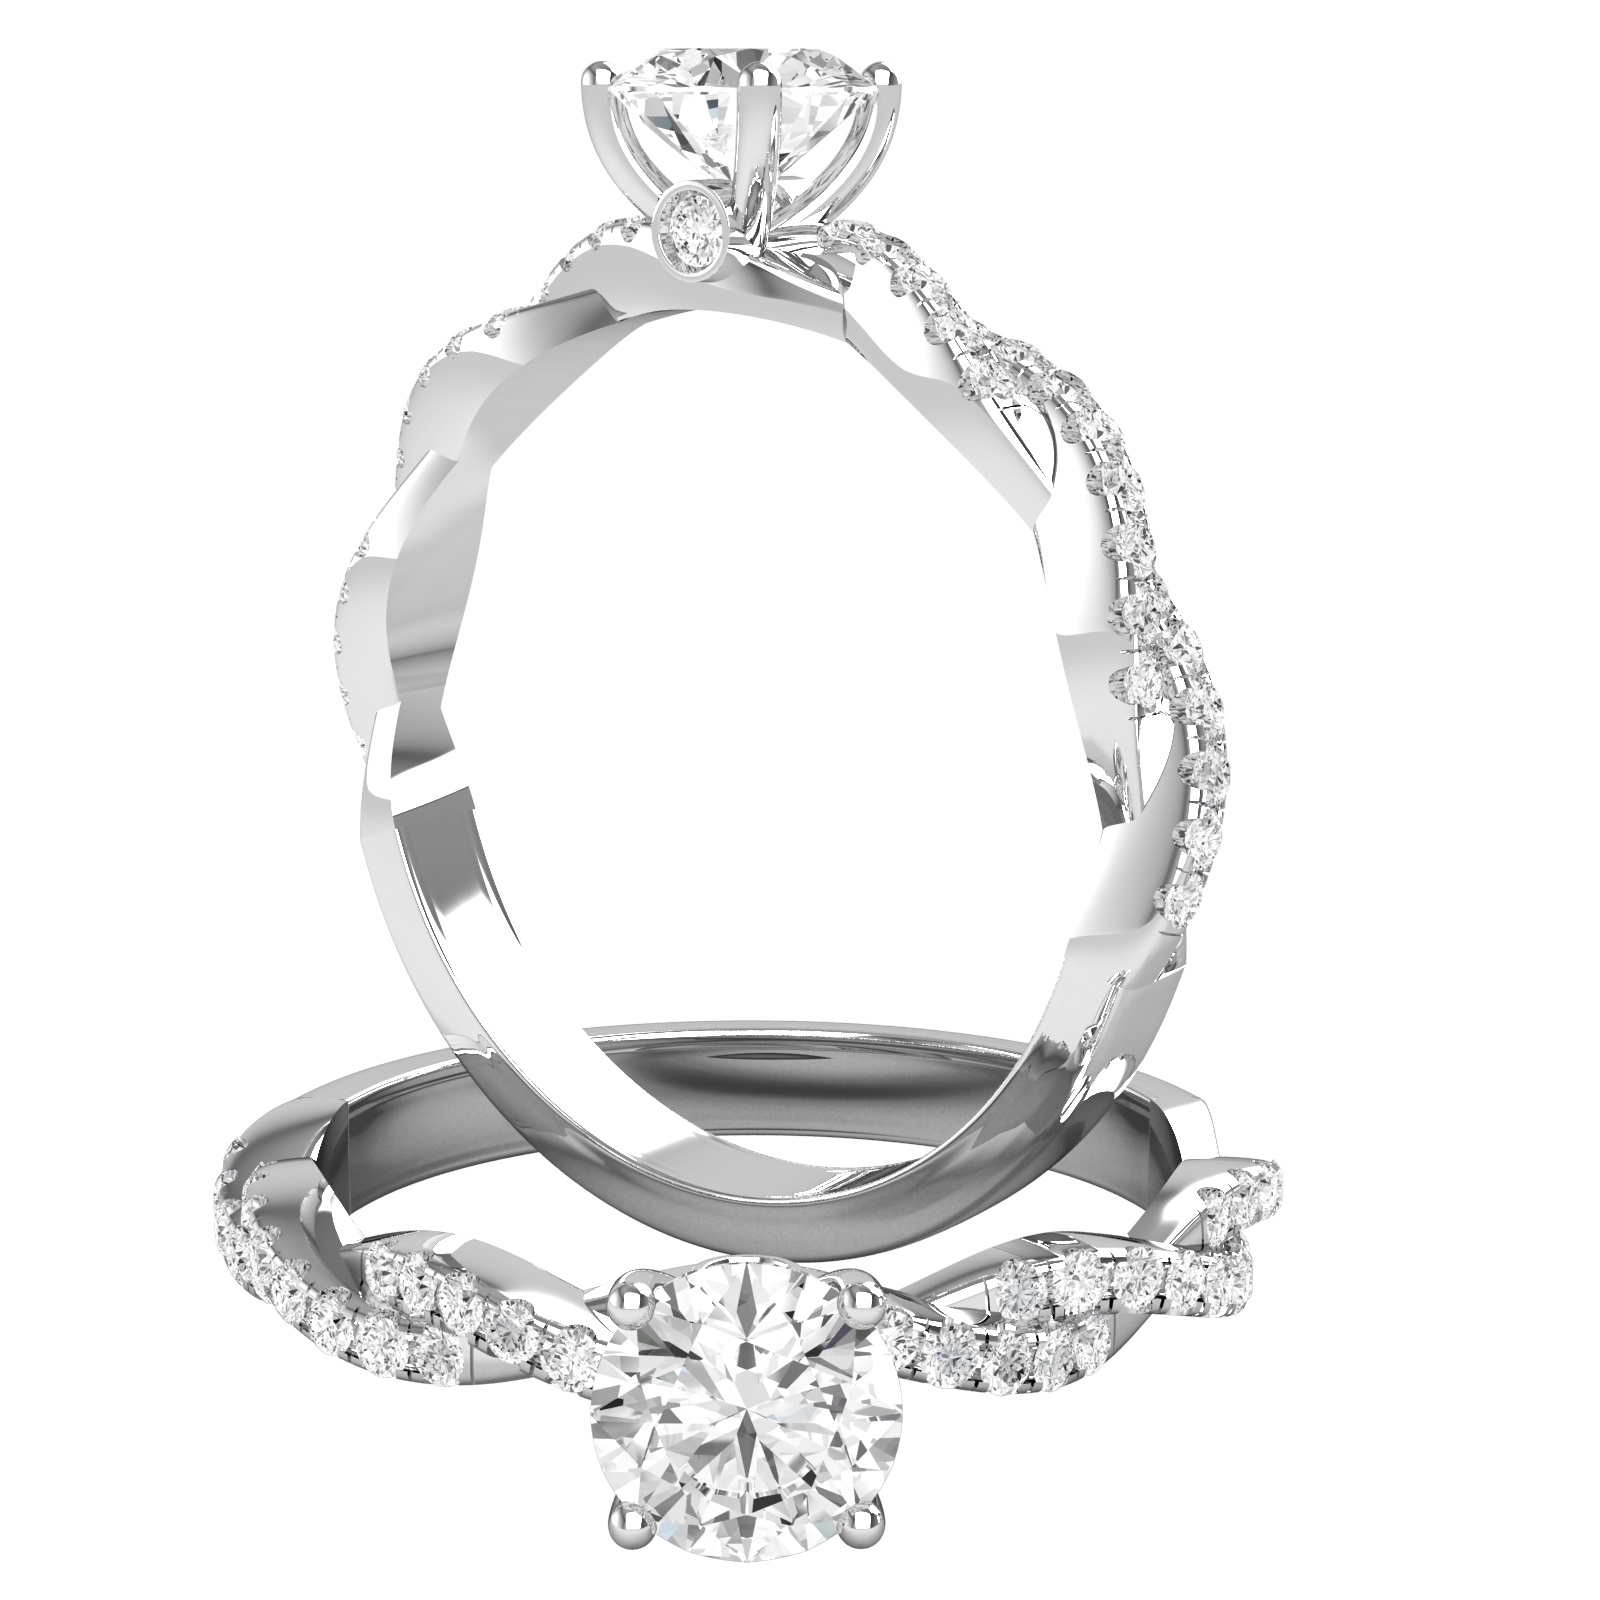 Inel de Logodna Solitaire cu Diamante Mici pe Lateral Dama Aur Alb 18kt cu Diamante Rotunde Briliant si Design Impletit-img1